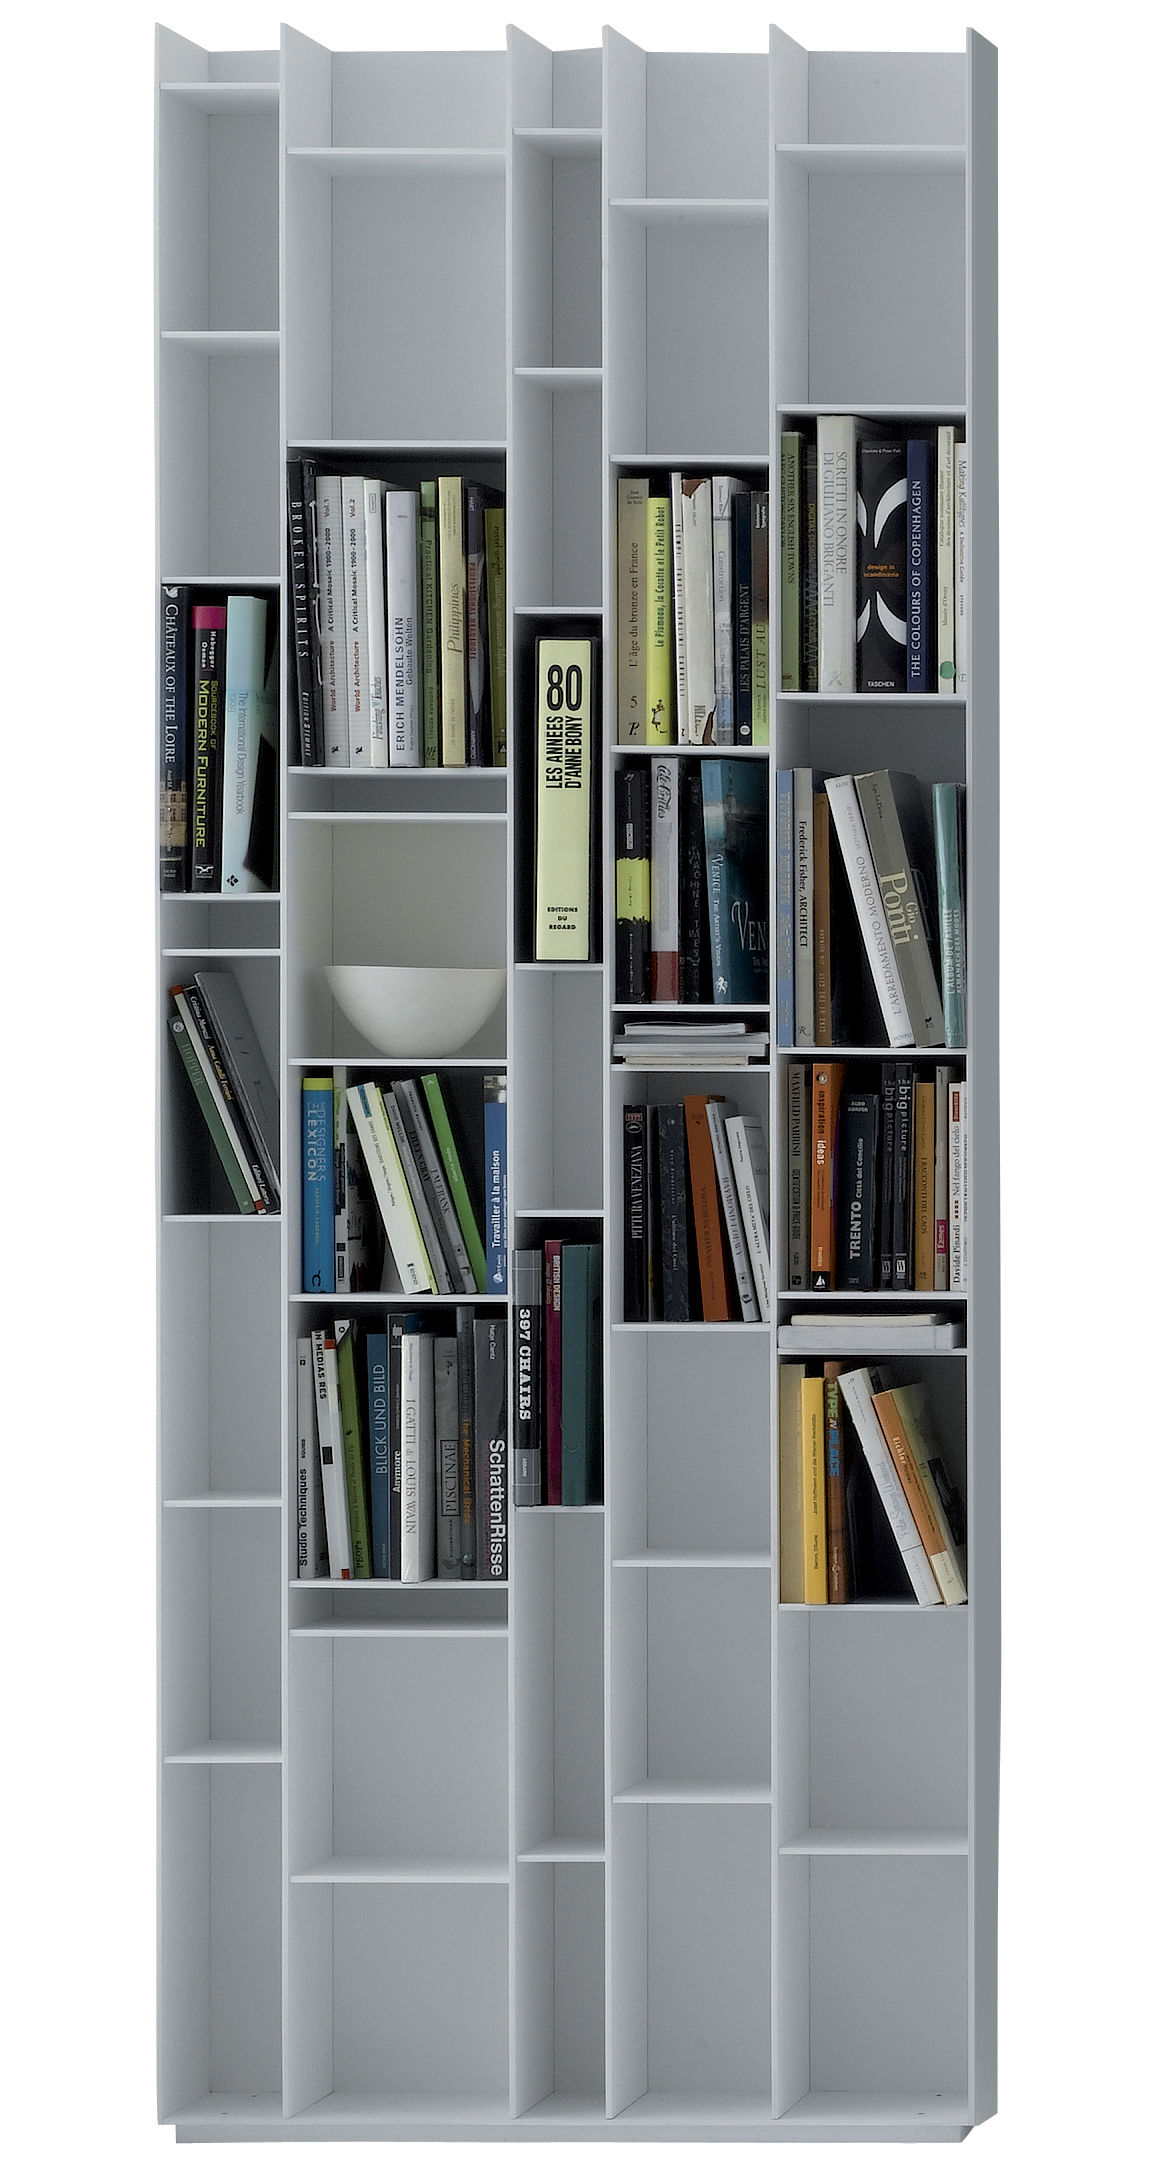 Furniture - Bookcases & Bookshelves - Random Bookcase by MDF Italia - Lacquered white - Lacquered wood fibre